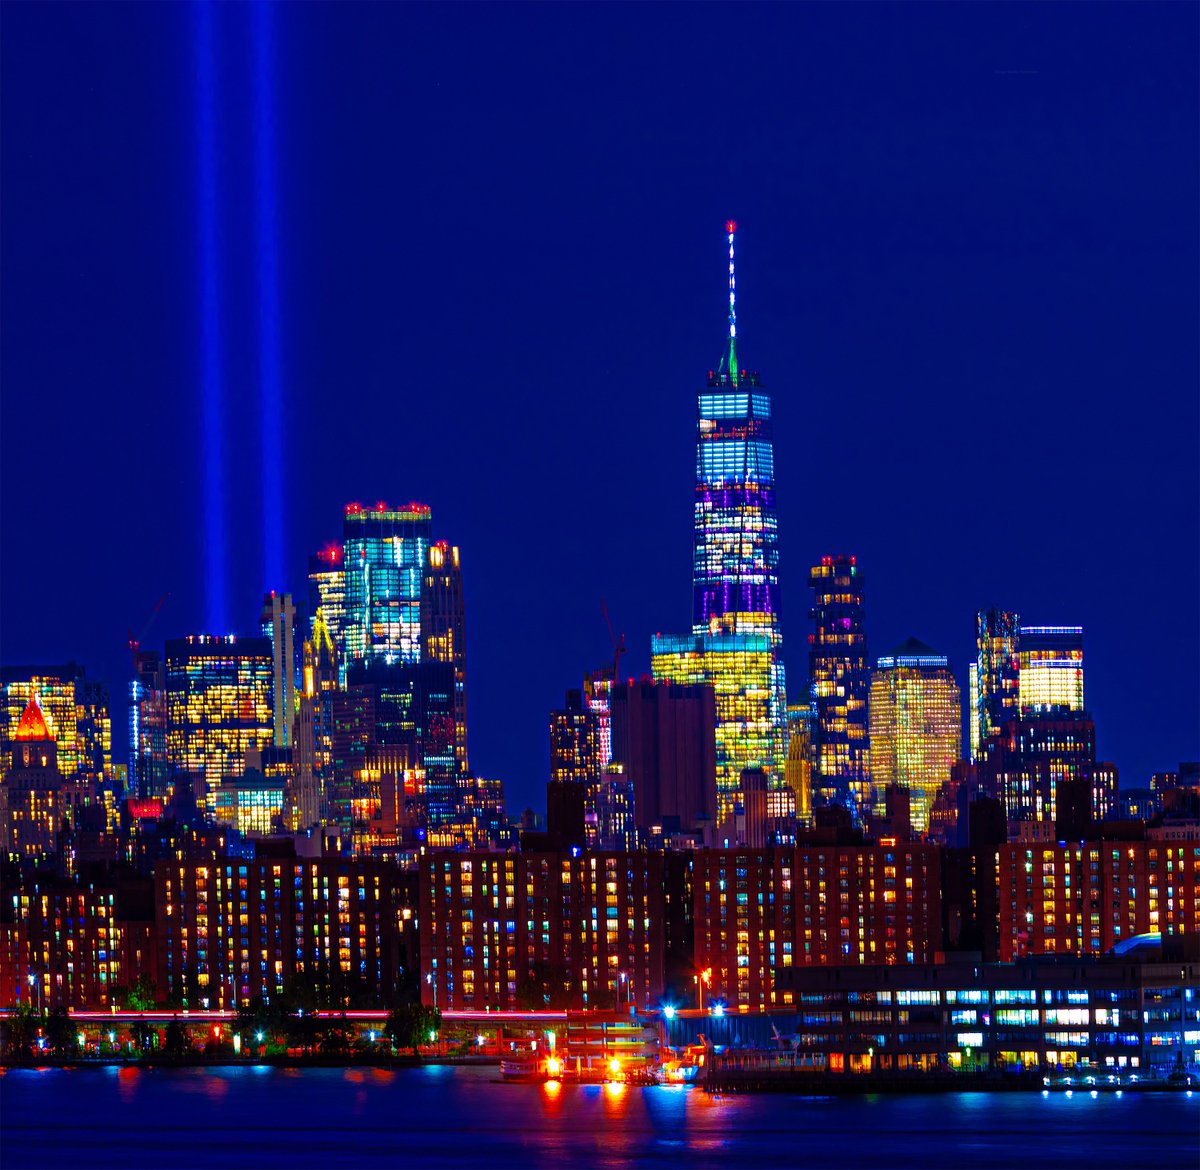 Tribute in Light graces the skies over World Trade Center tonight at twilight. #NYC #September11 #NeverForget911 #TributeInLight <br>http://pic.twitter.com/oyuGbrDG9j